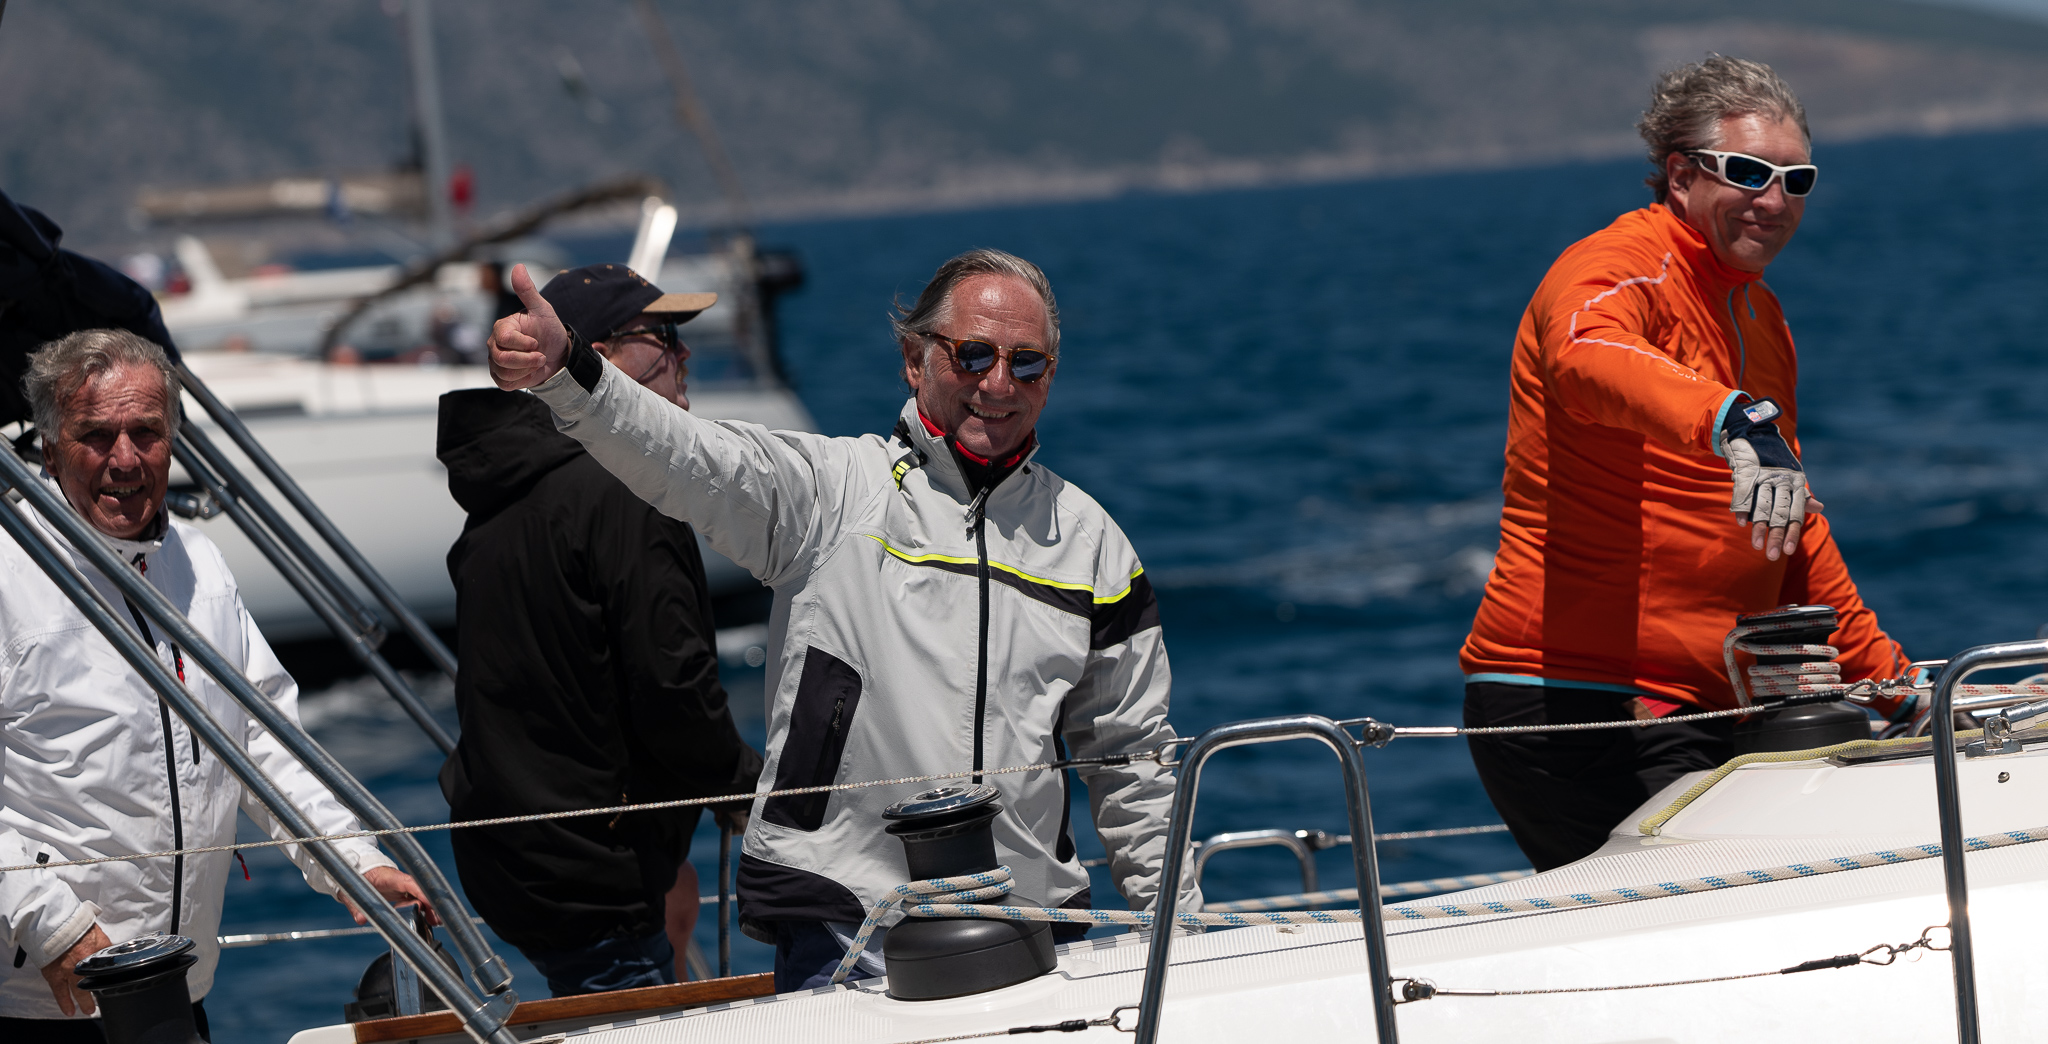 Pieter Hadjidakis and the crew of Boat 70